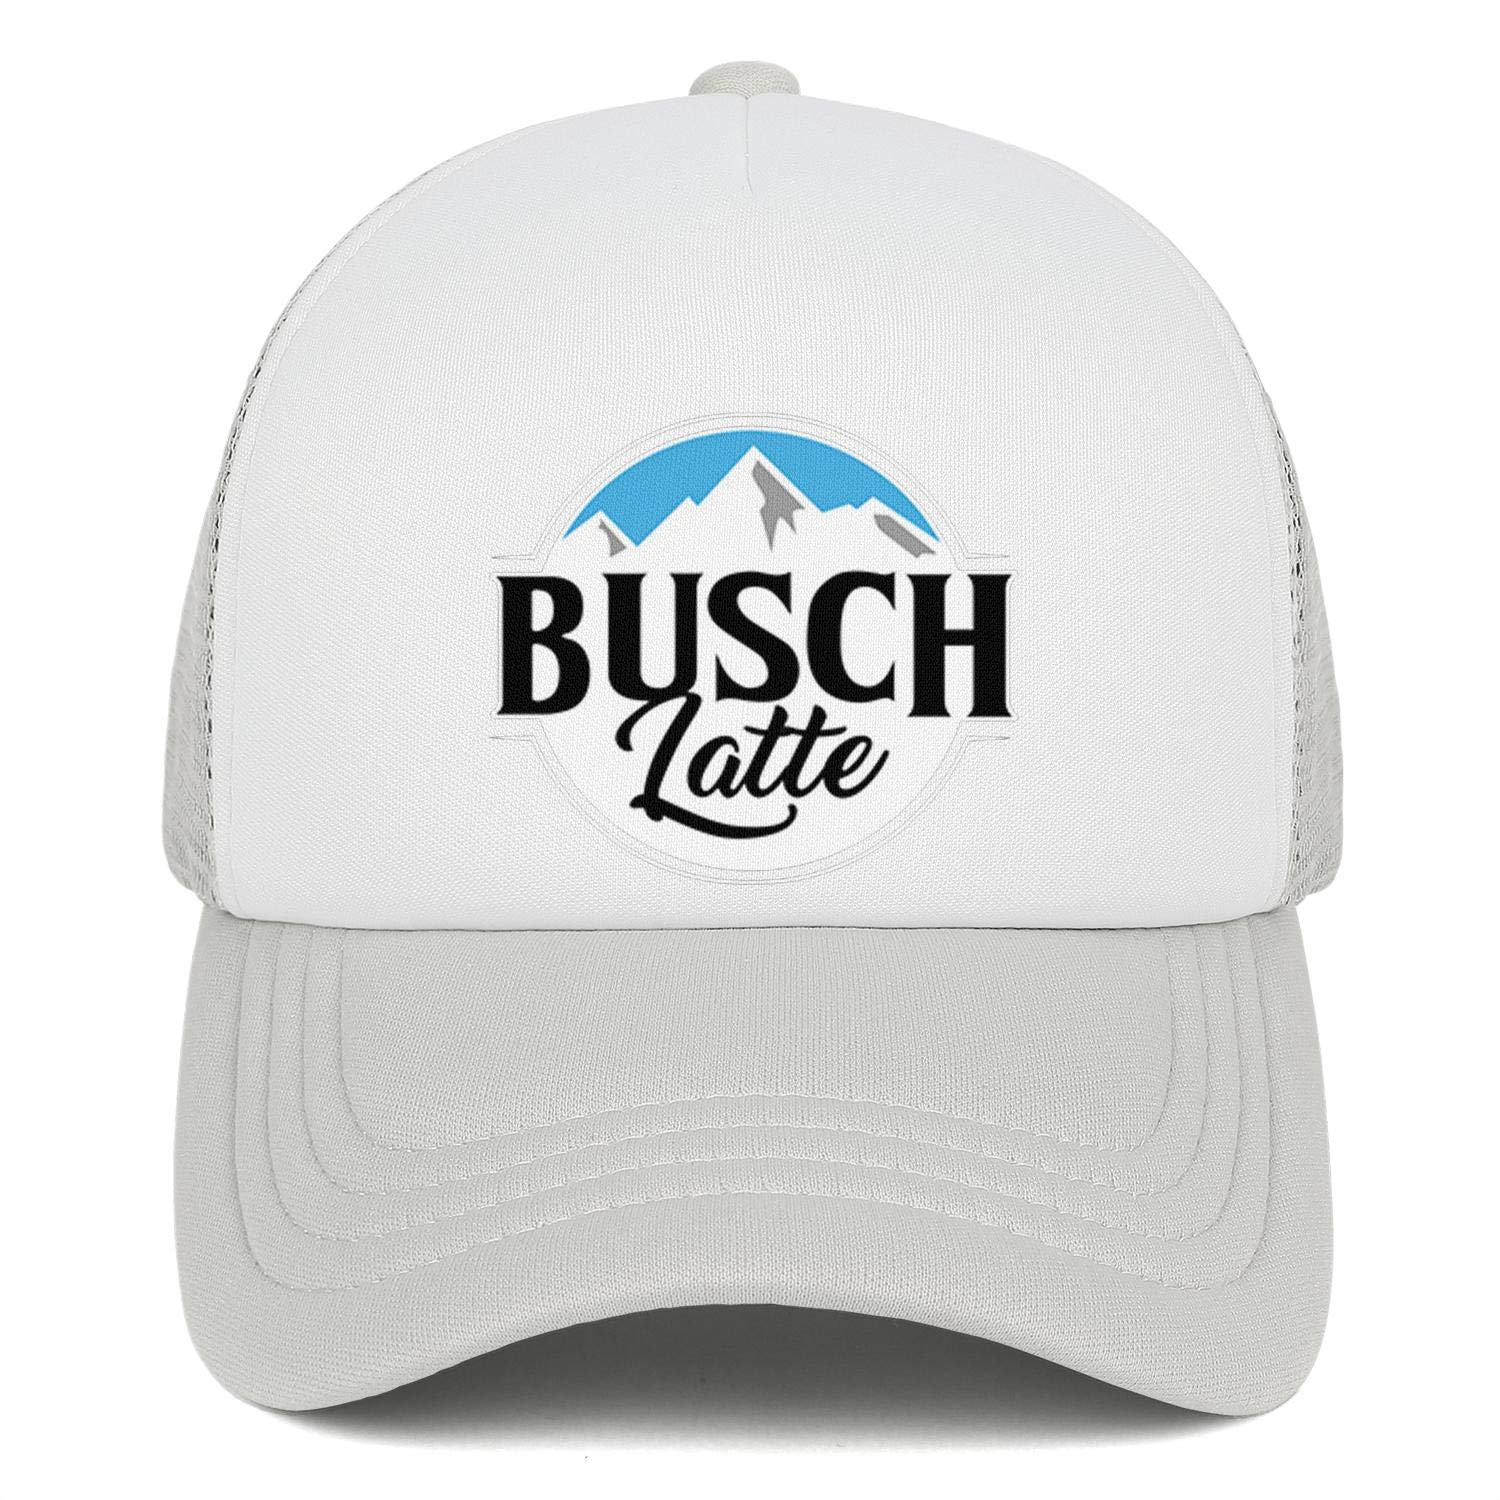 Sports Cap Mens Women Trucker Hat DKOEWPQM Unisex Caps Busch-Light-Busch-Latte